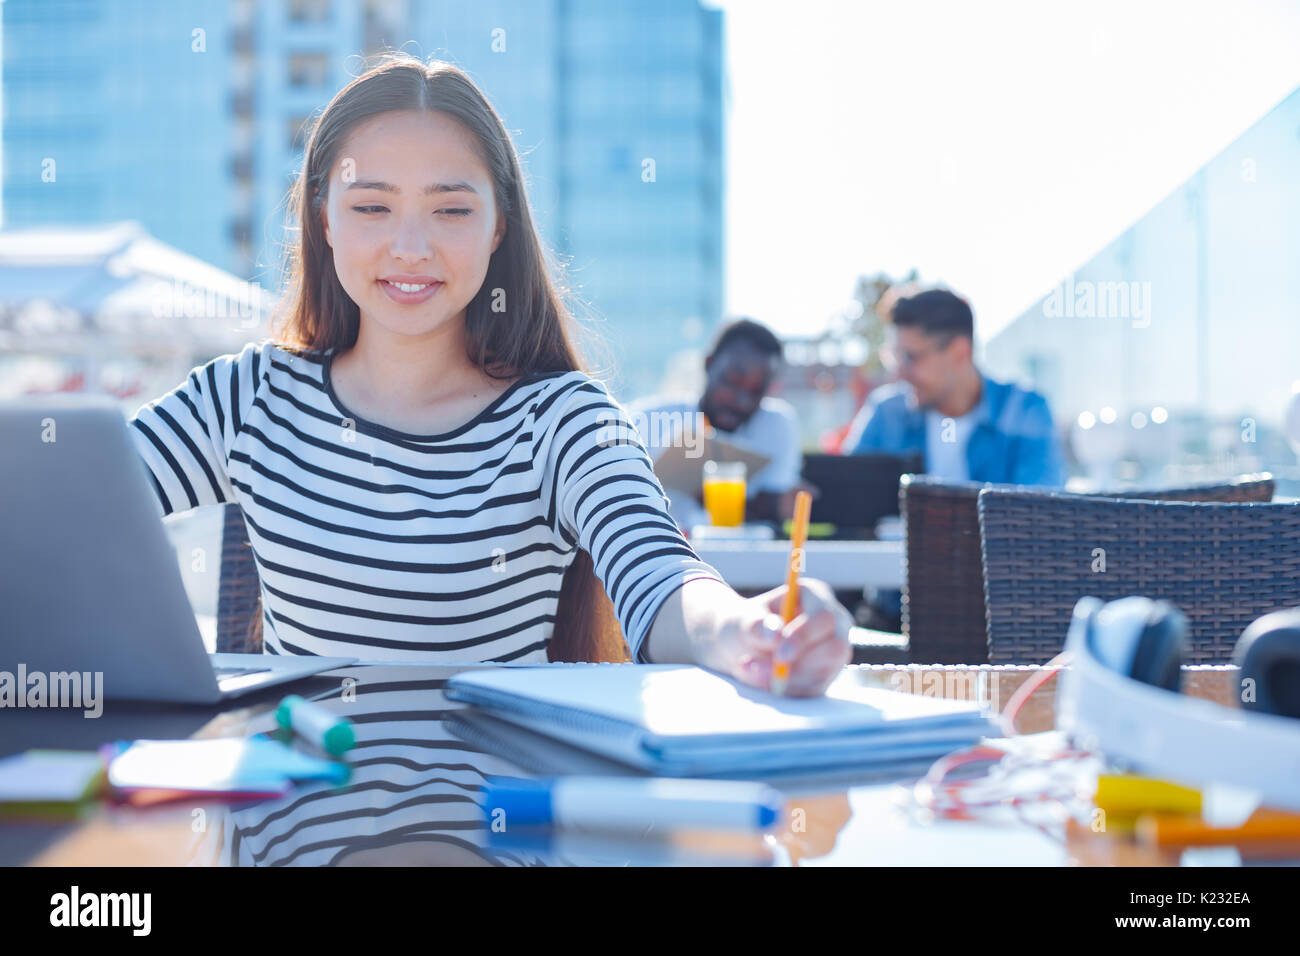 Pretty female student writing down noes - Stock Image